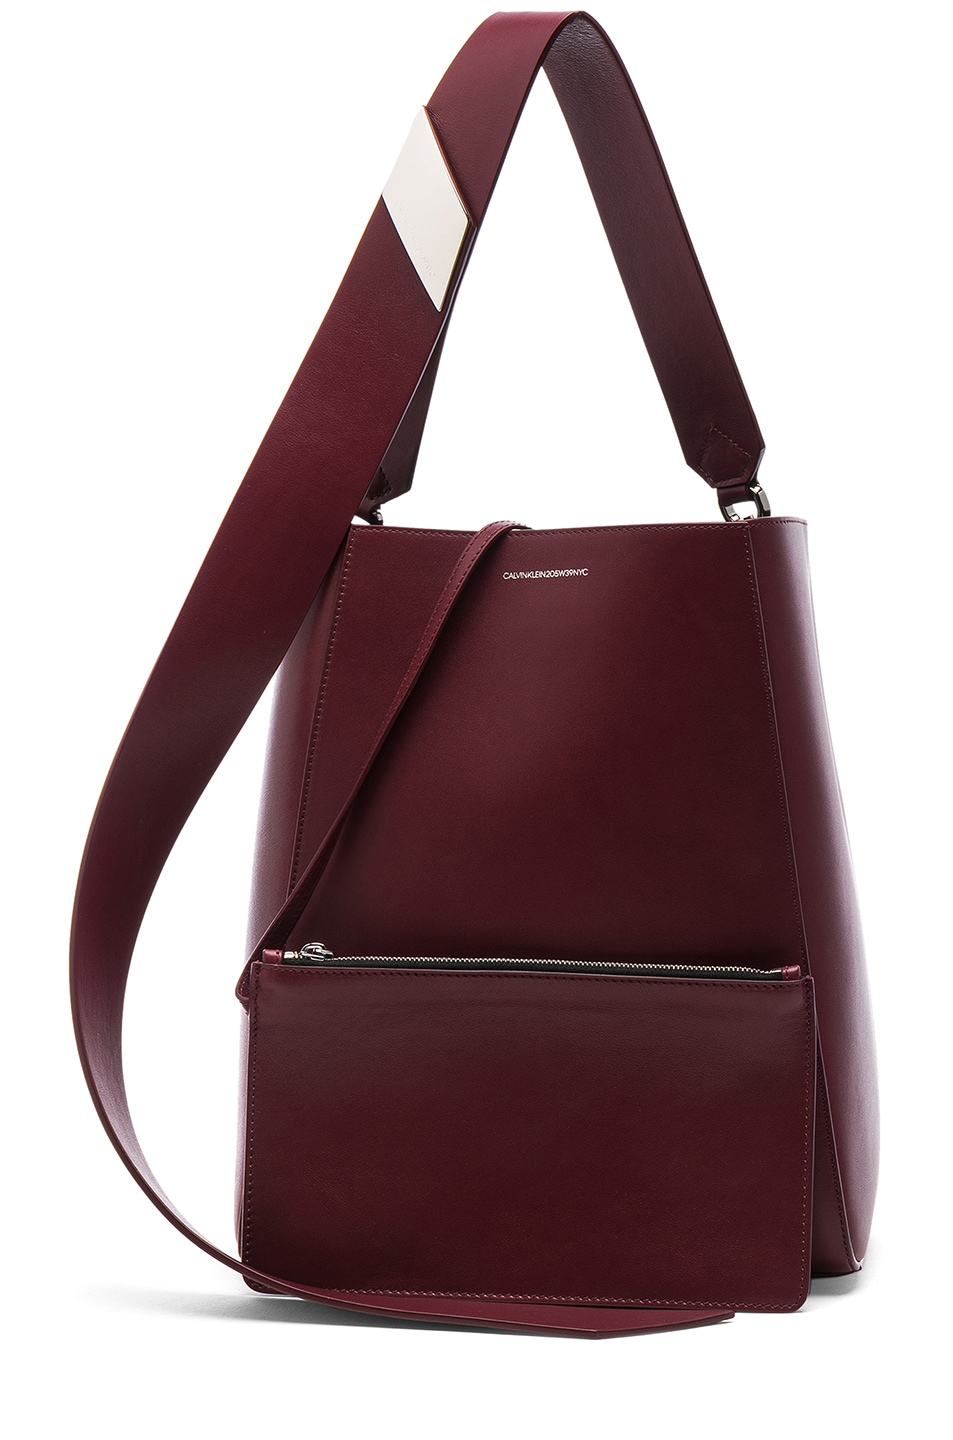 Image 6 of CALVIN KLEIN 205W39NYC Luxe Calf Leather Stripe Link Bucket Bag in Cherry